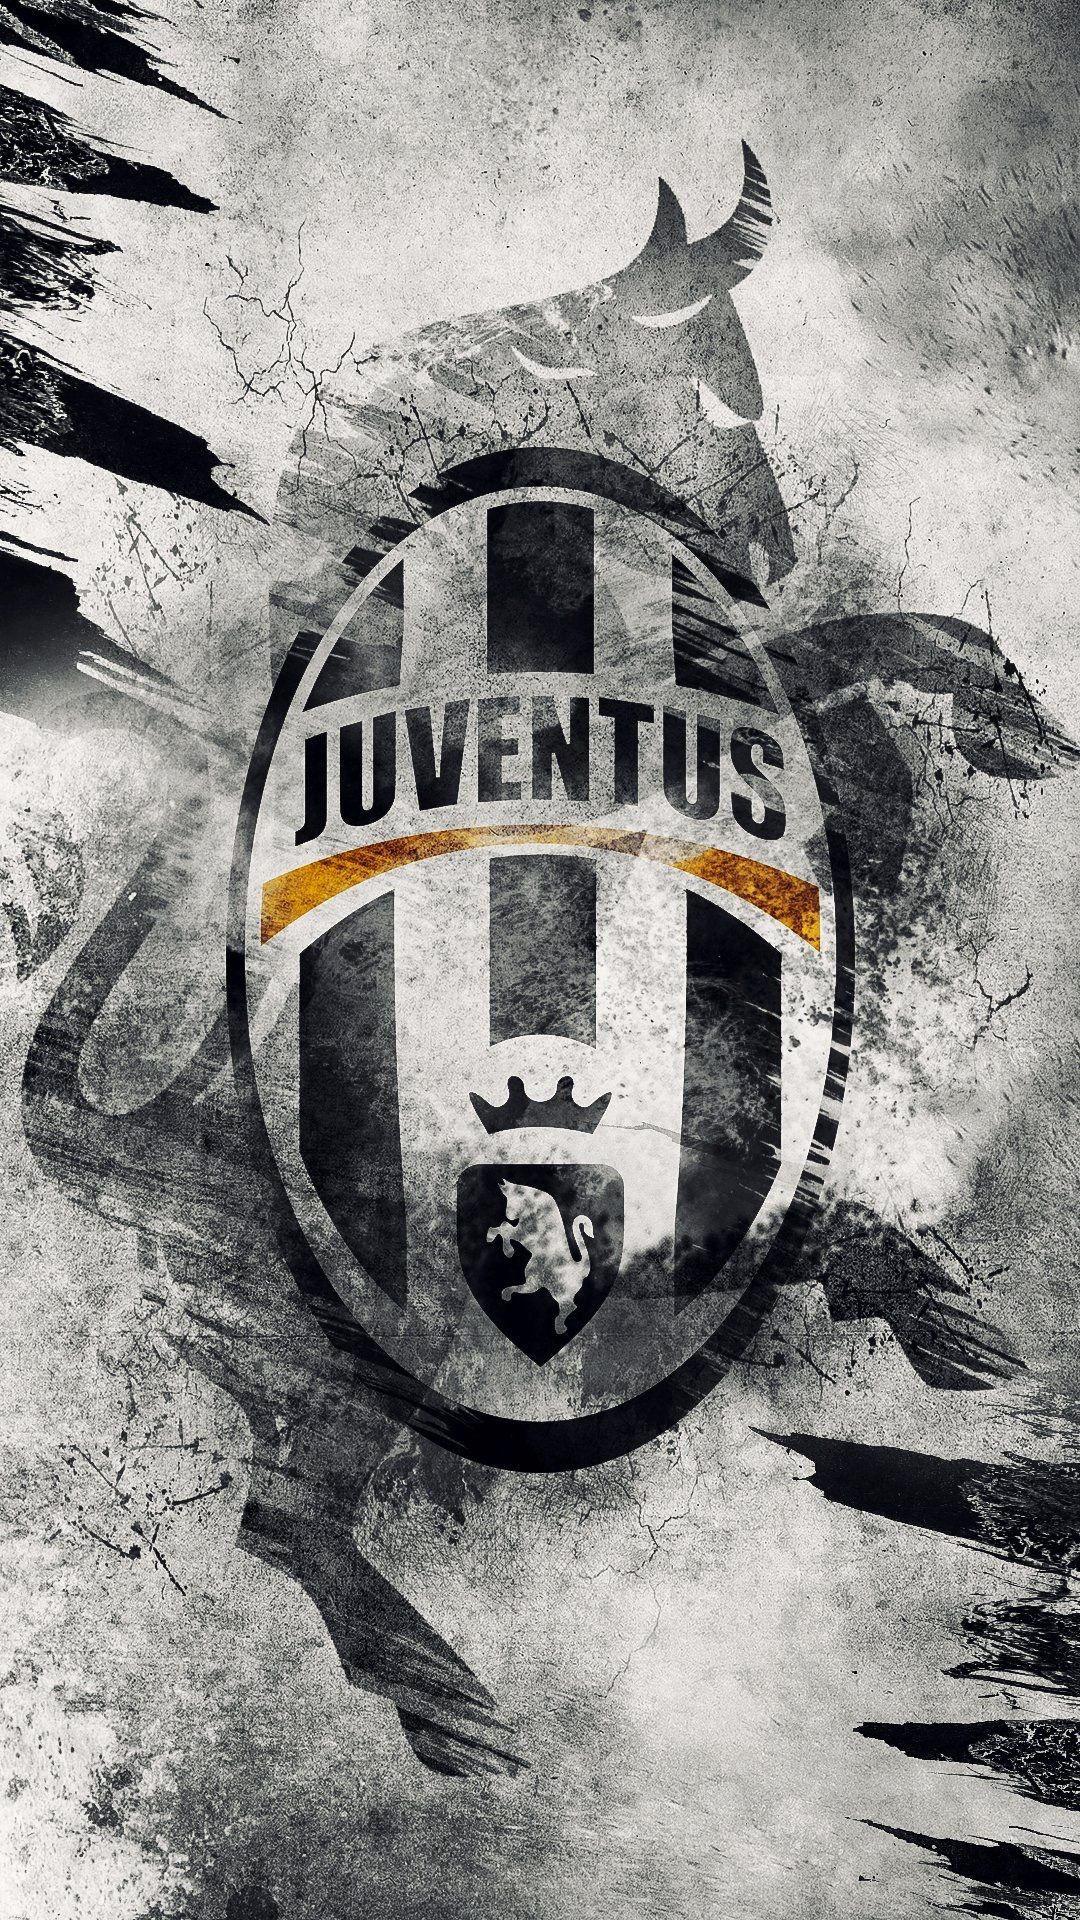 Juventus fc wallpaper the old lady pinterest juventus fc wallpaper voltagebd Gallery